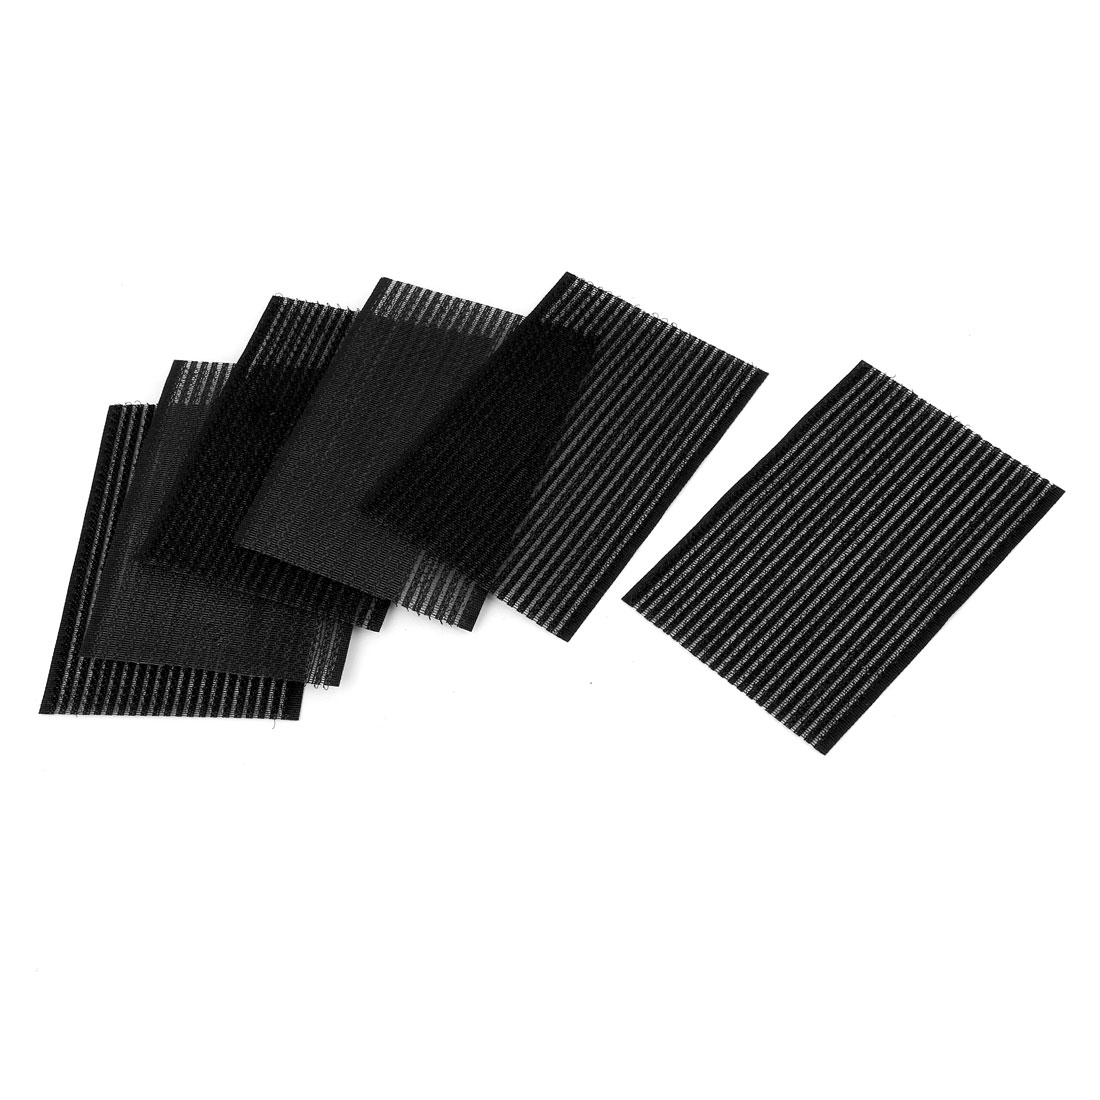 6 Pcs Plastic Rectangle Magic Paste Posts Fringe Hair Bangs Stickers Black